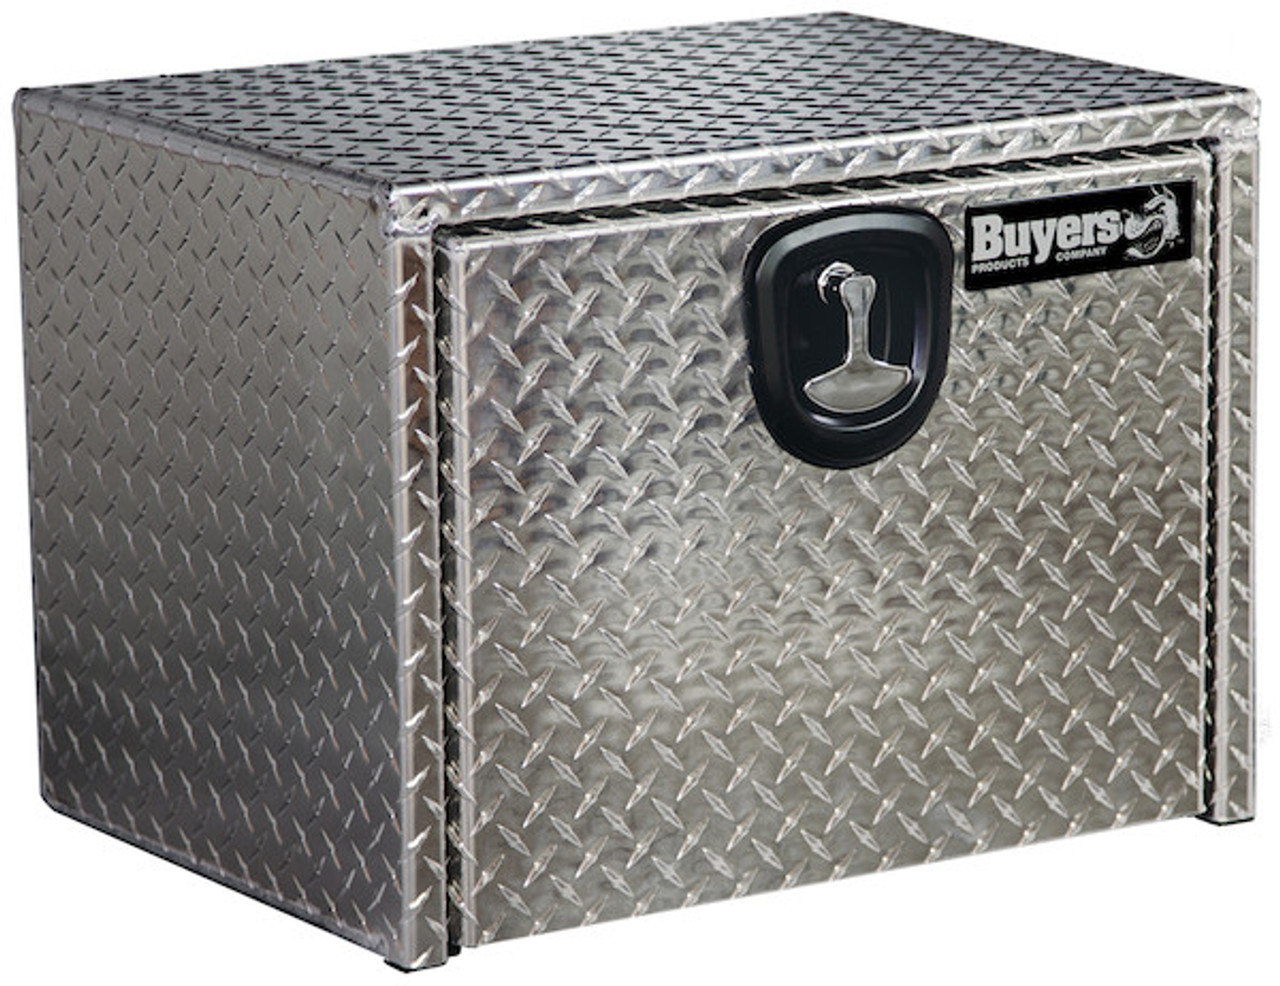 "1705100 BUYERS PRODUCTS DIAMOND TREAD ALUMINUM UNDERBODY TRUCK TOOLBOX 18""HX18""DX24""W"